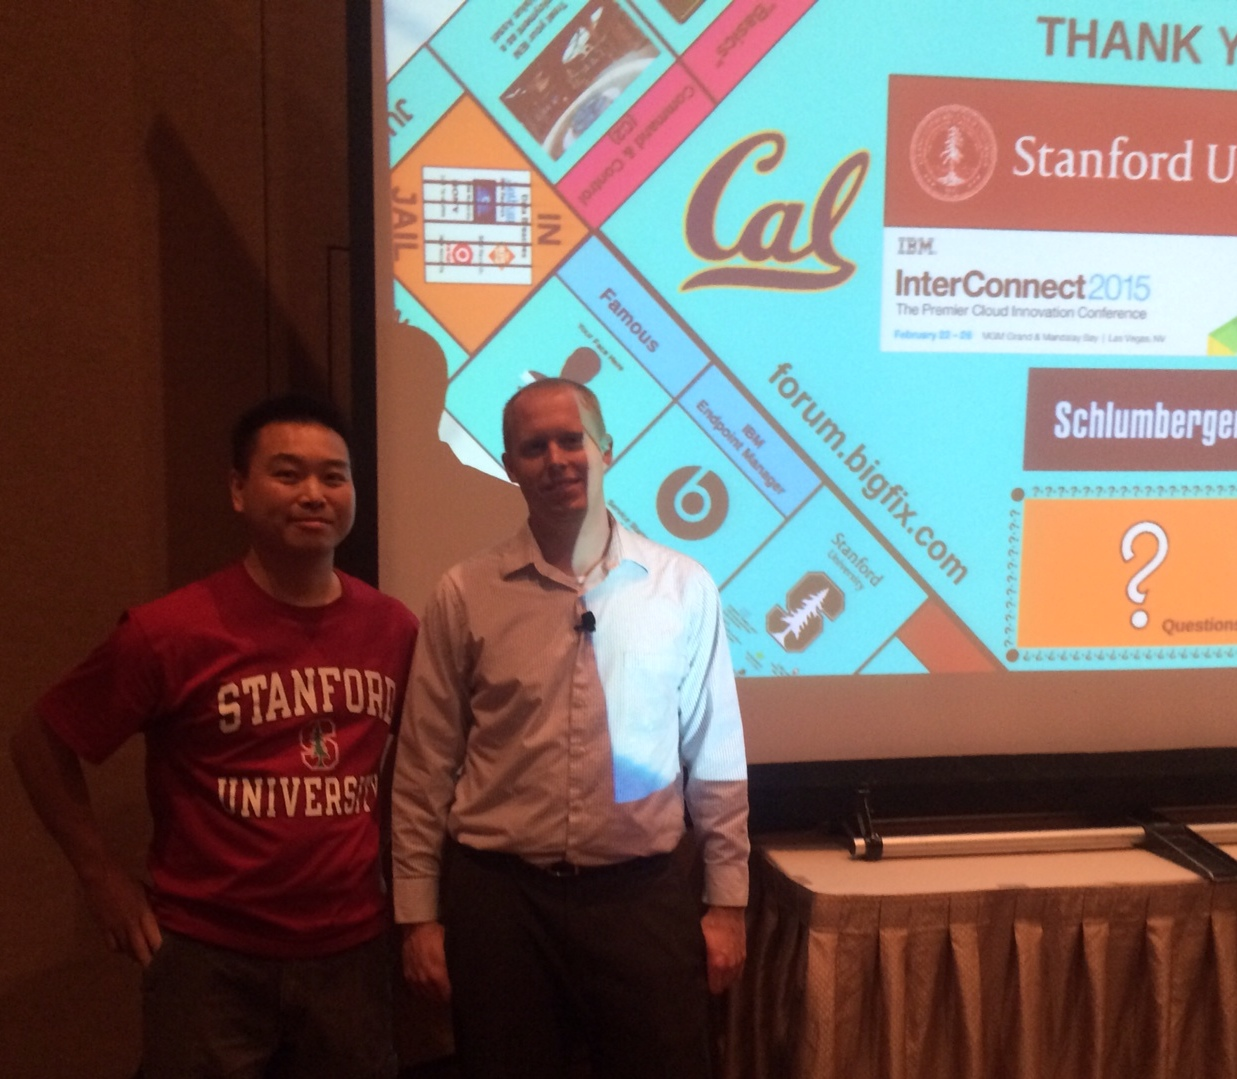 Stacy Lee (L) and Brian Katyl (r) of Stanford University's Security Operations Team at IBM InterConnect 2015